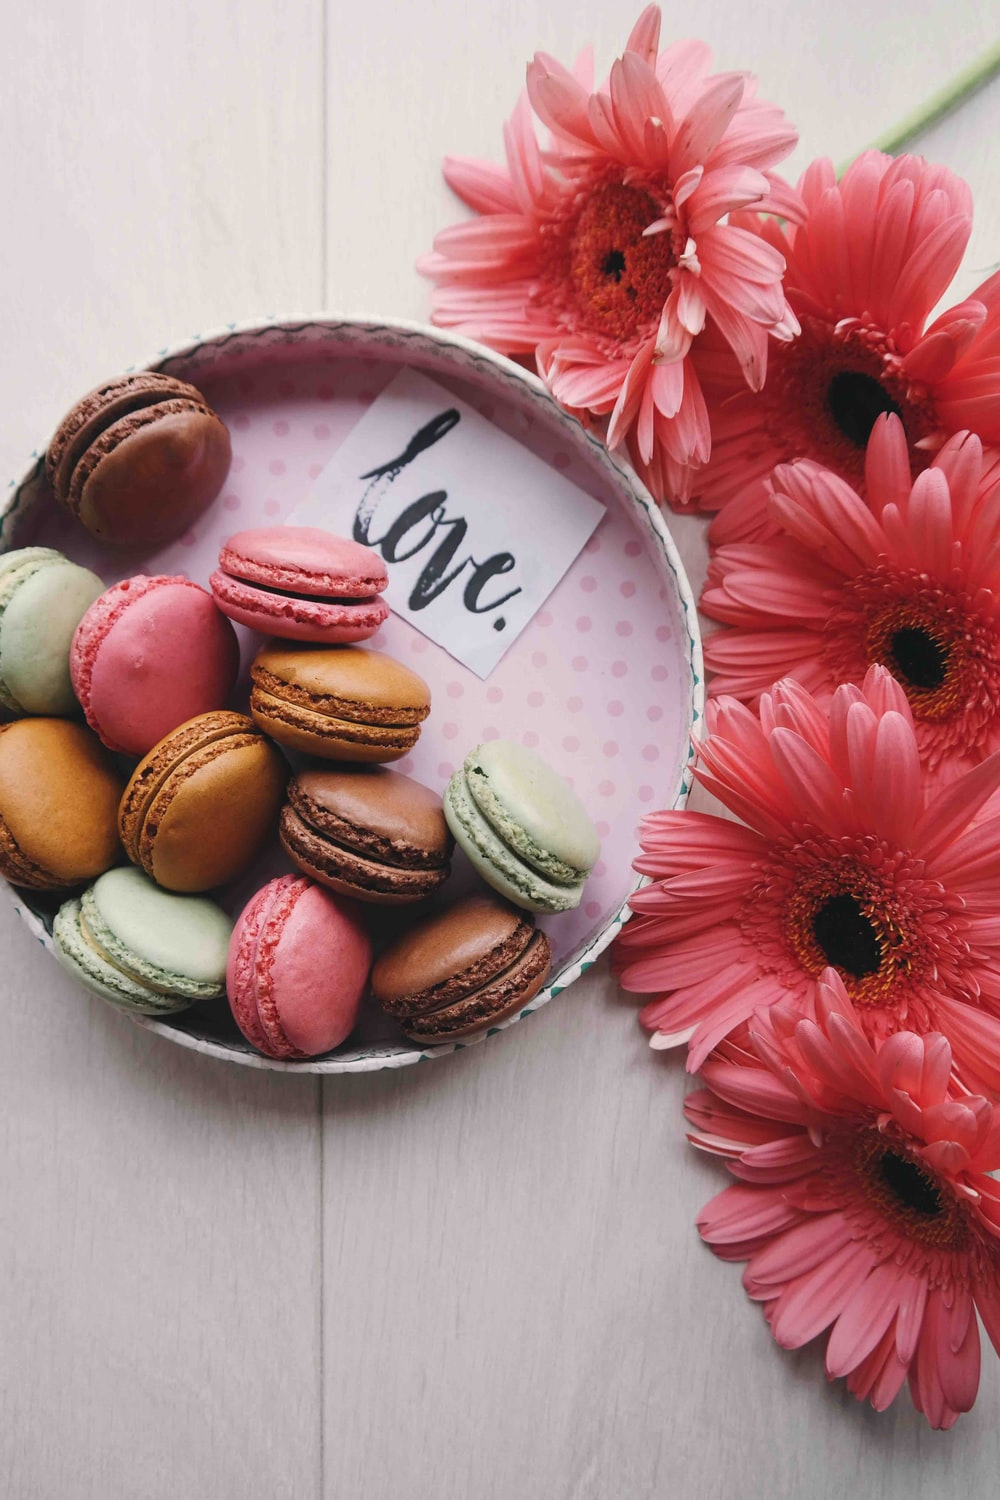 macaroons on a tray with the word 'love'